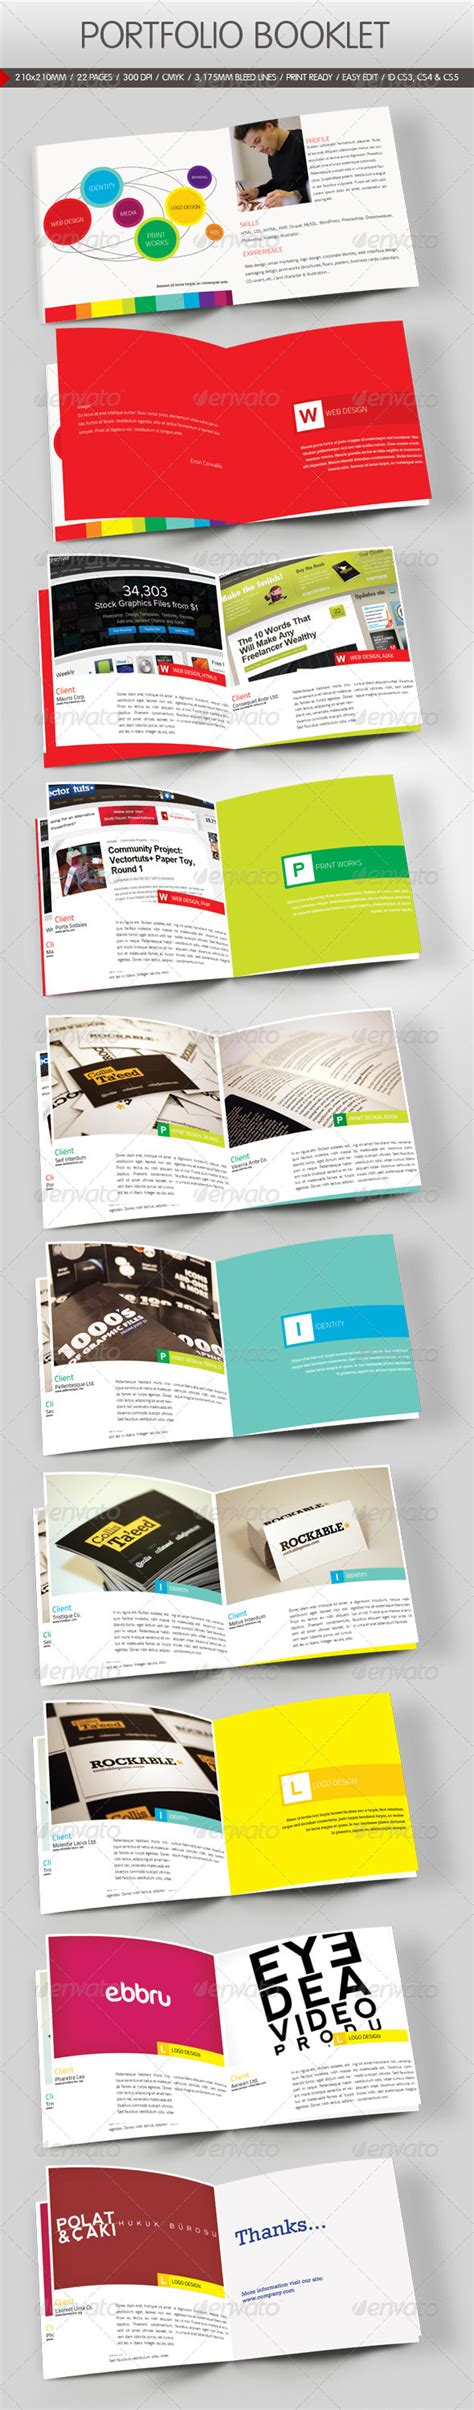 portfolio booklet graphicriver